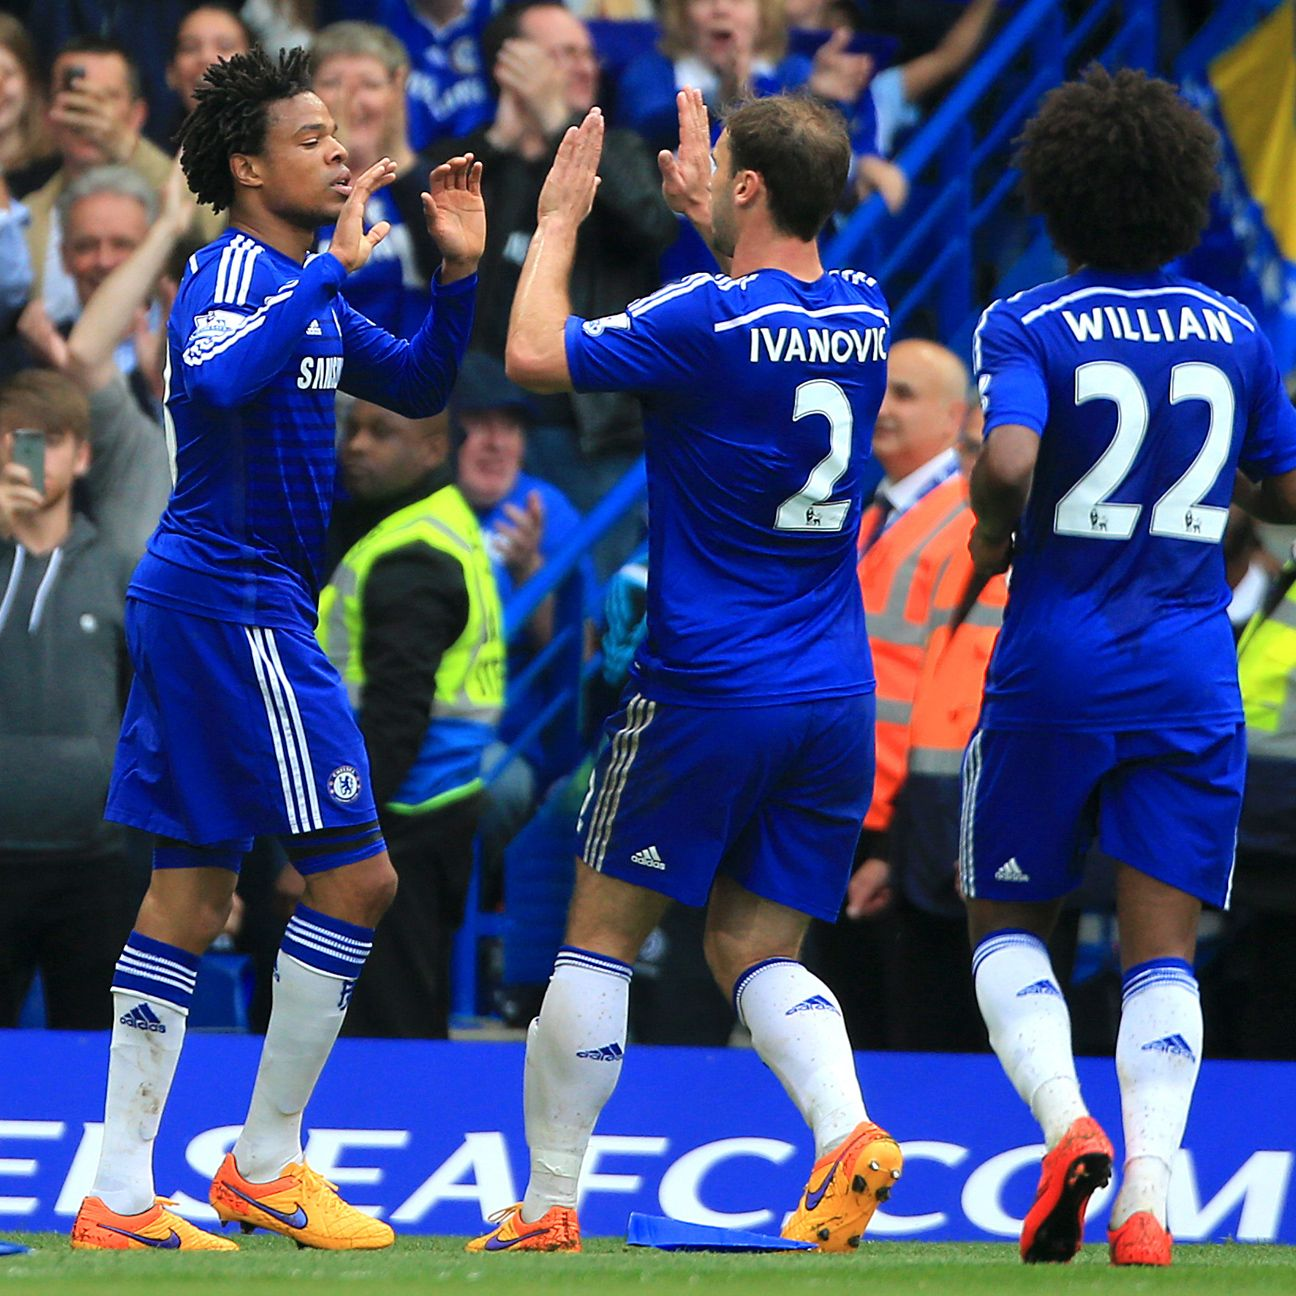 There were celebrations all around at Stamford Bridge on Sunday in another Chelsea victory to cap 2014-15.